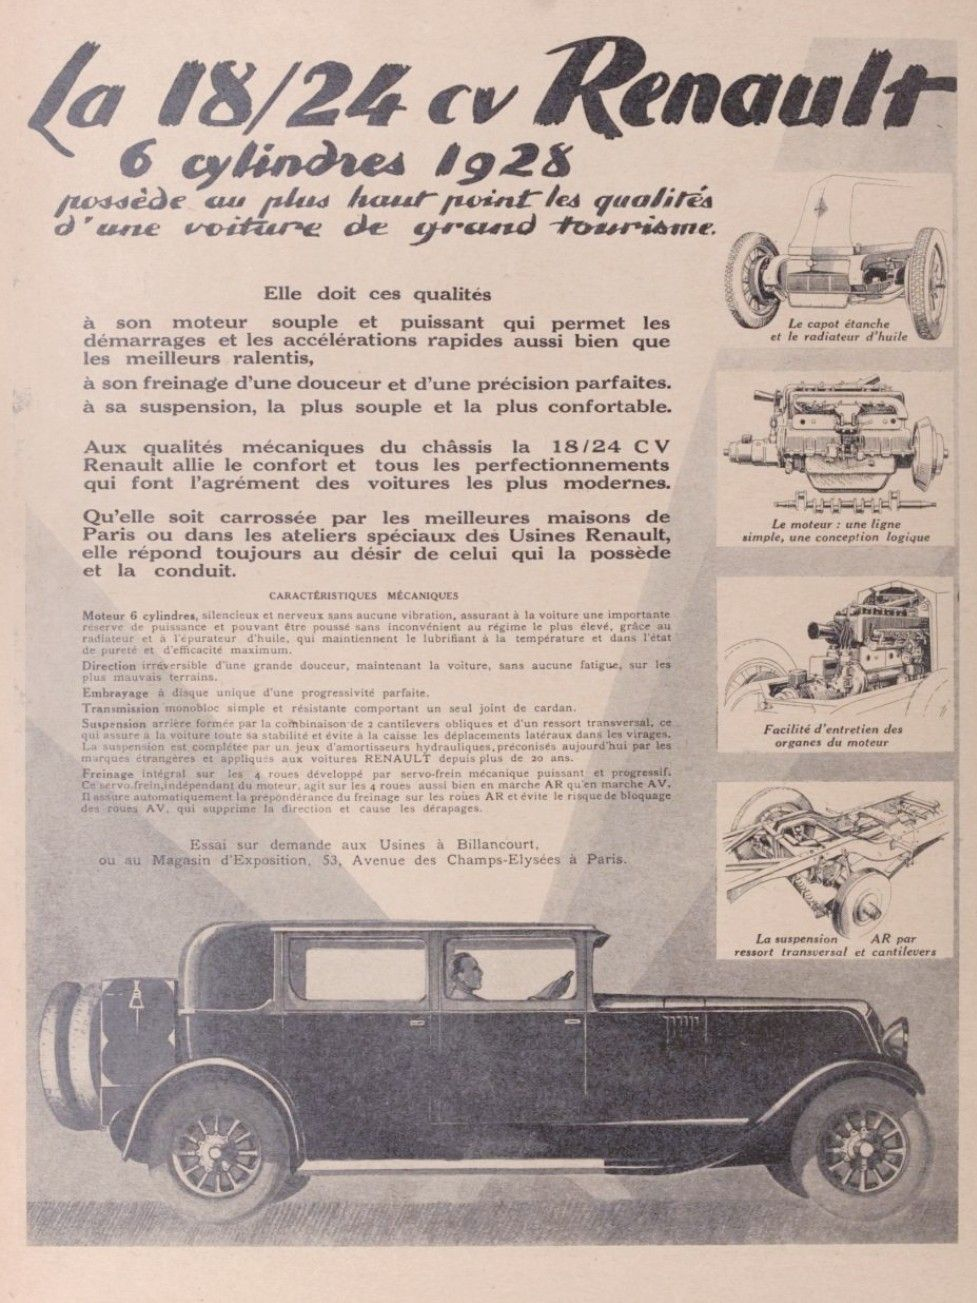 Renault 1928 Classic Cars Cars Vintage Cars